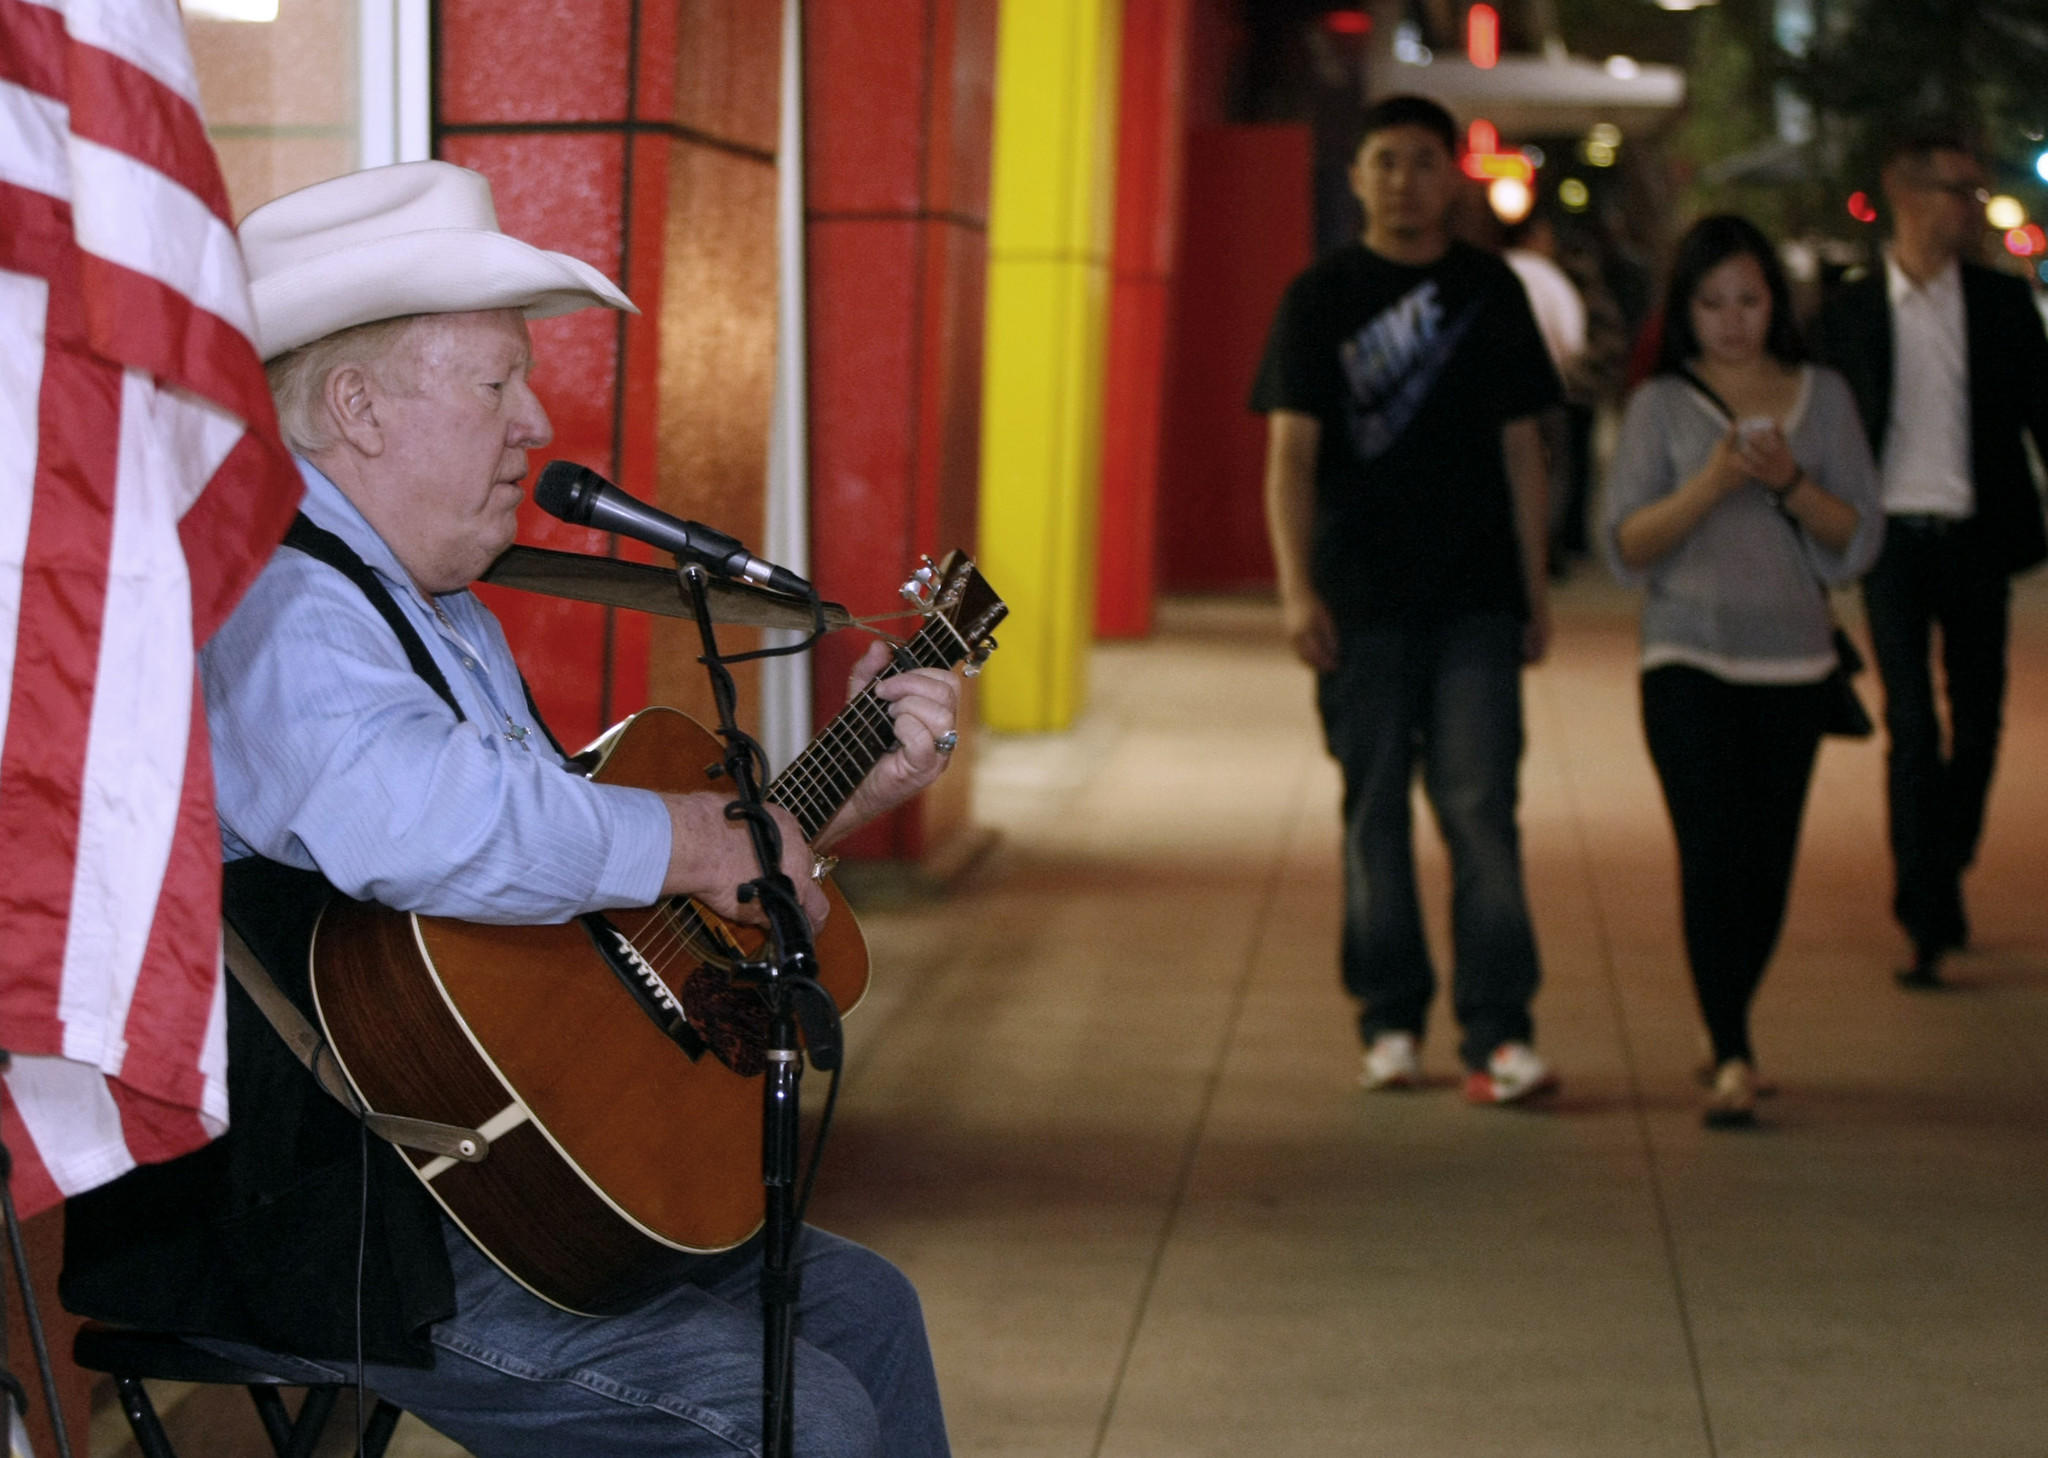 Street performer Red Benson plays folk rock on Brand Blvd. as people walk by, in Glendale on Saturday, January 25, 2014. Benson has been playing at this location for about 15 years.